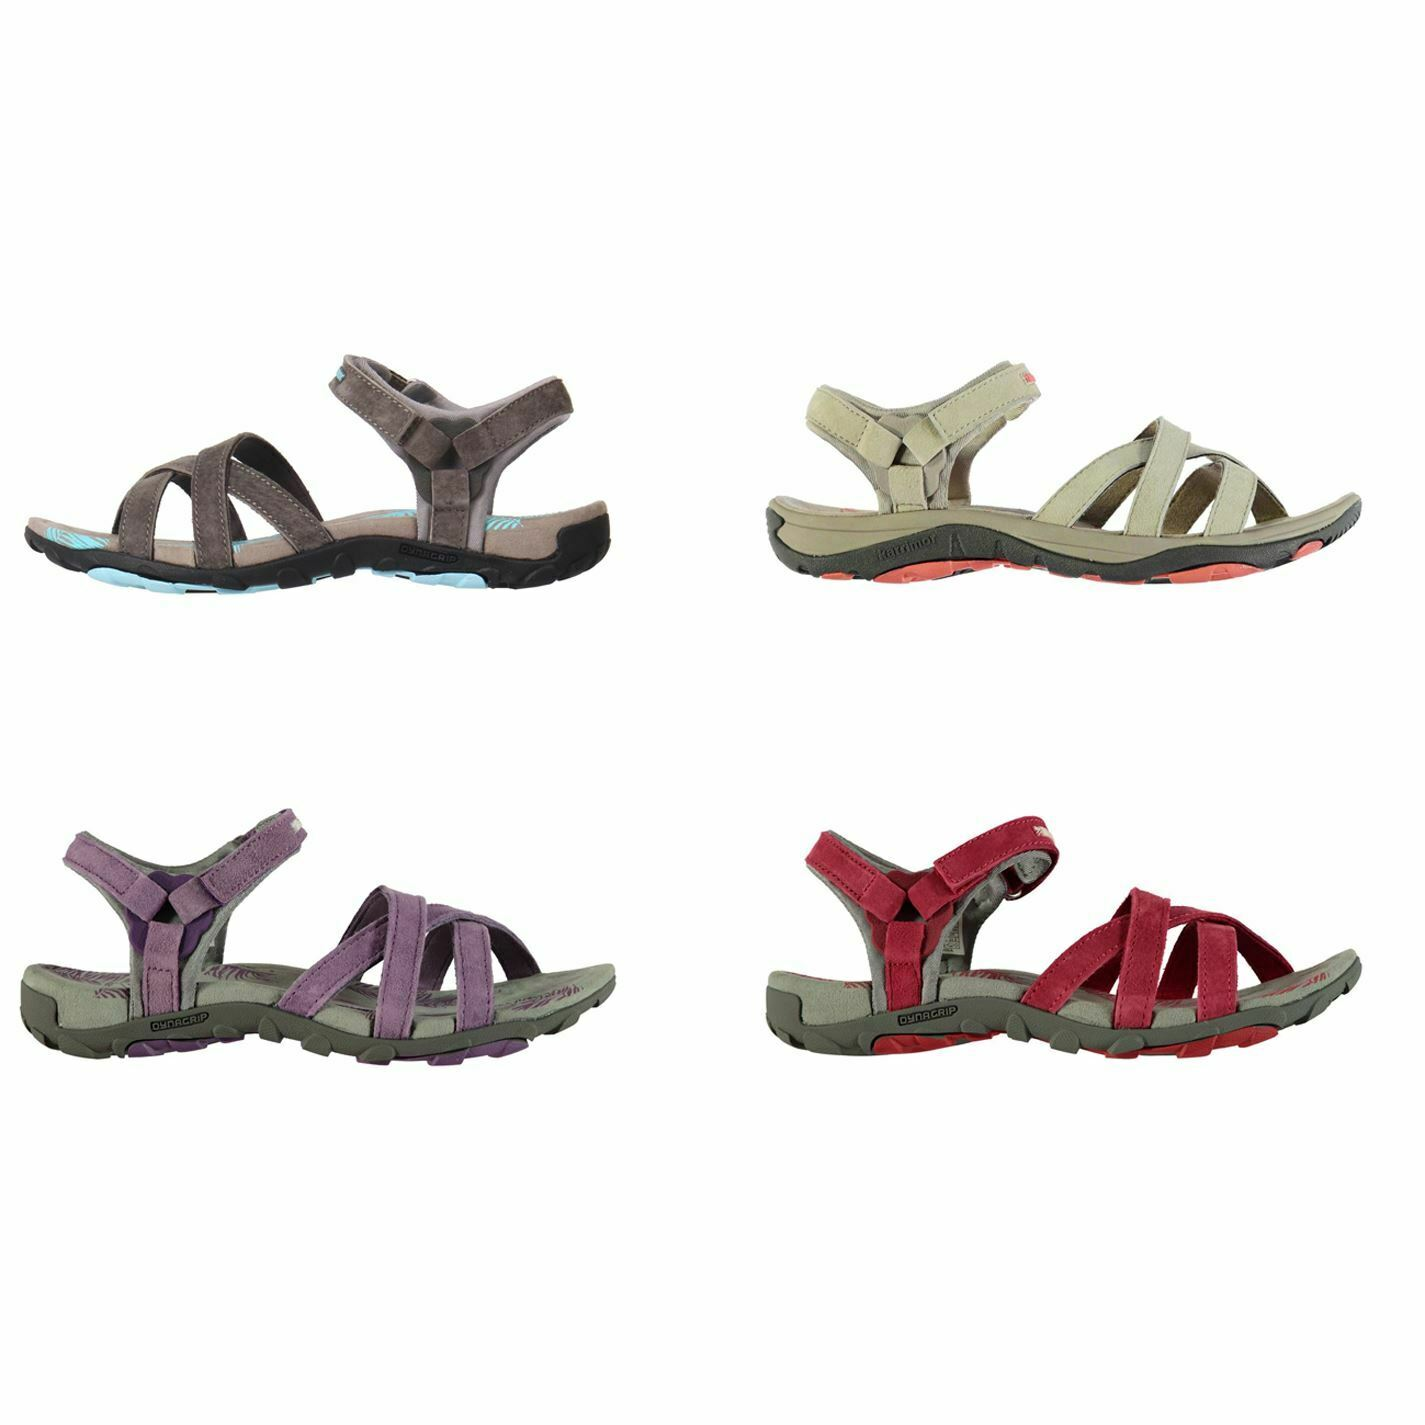 Karrimor Salina Ladies Walking Sandals Outdoor Footwear Flip Flops